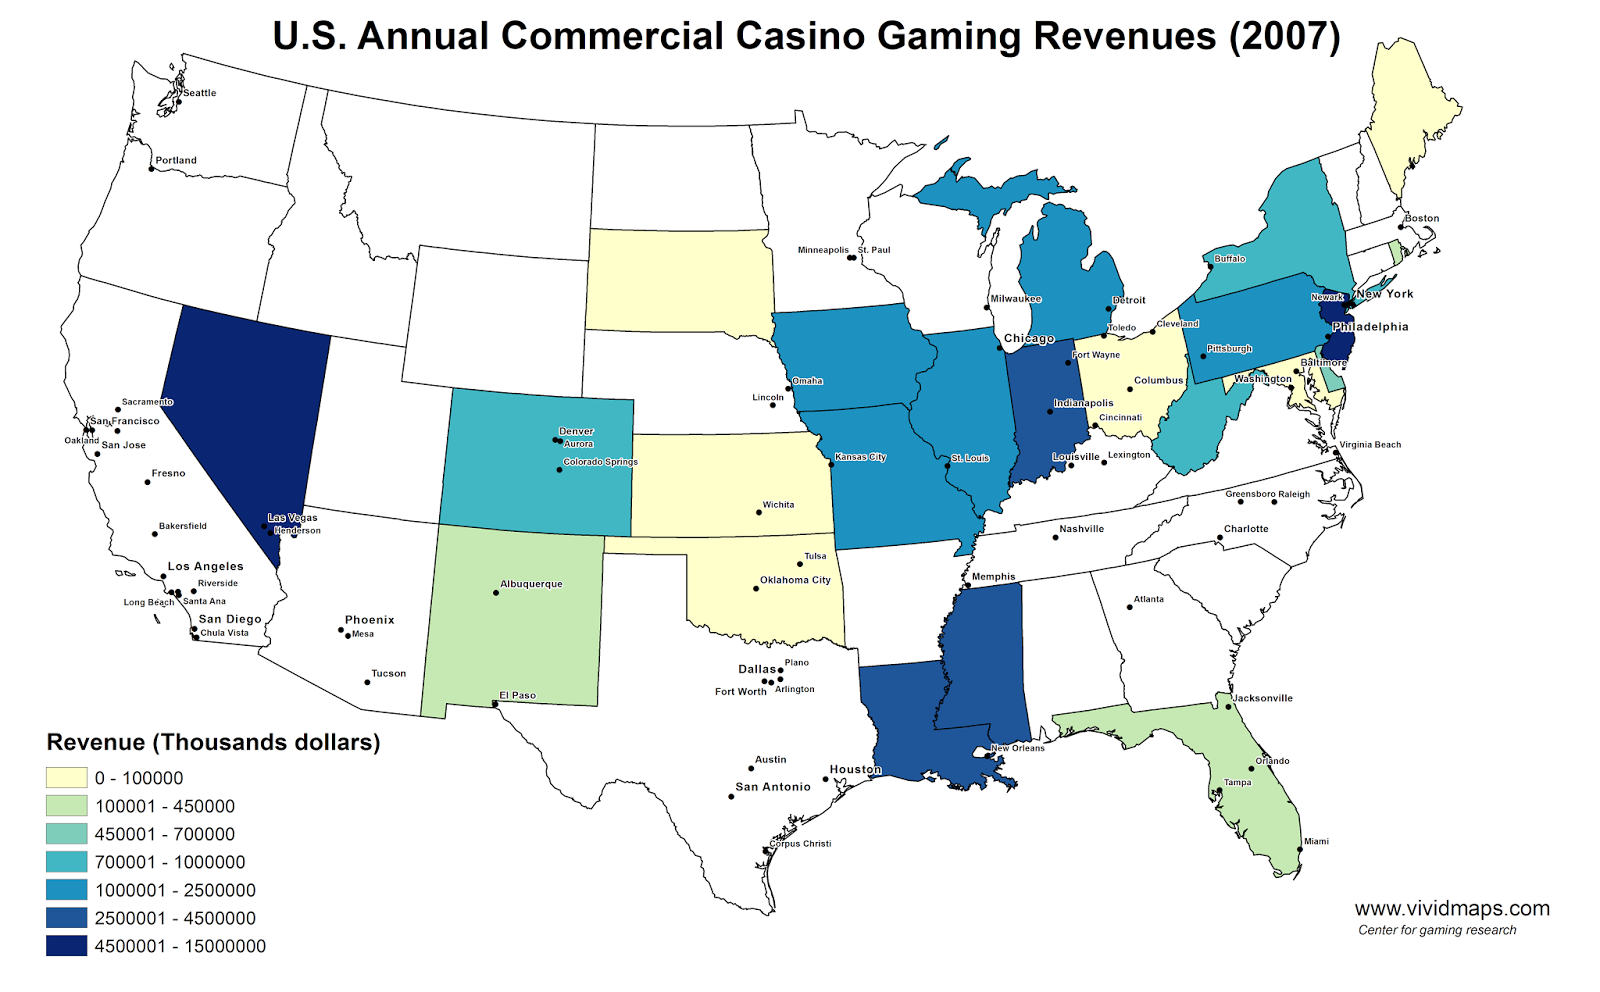 U.S. Annual Commercial Casino Gaming Revenues (2007)